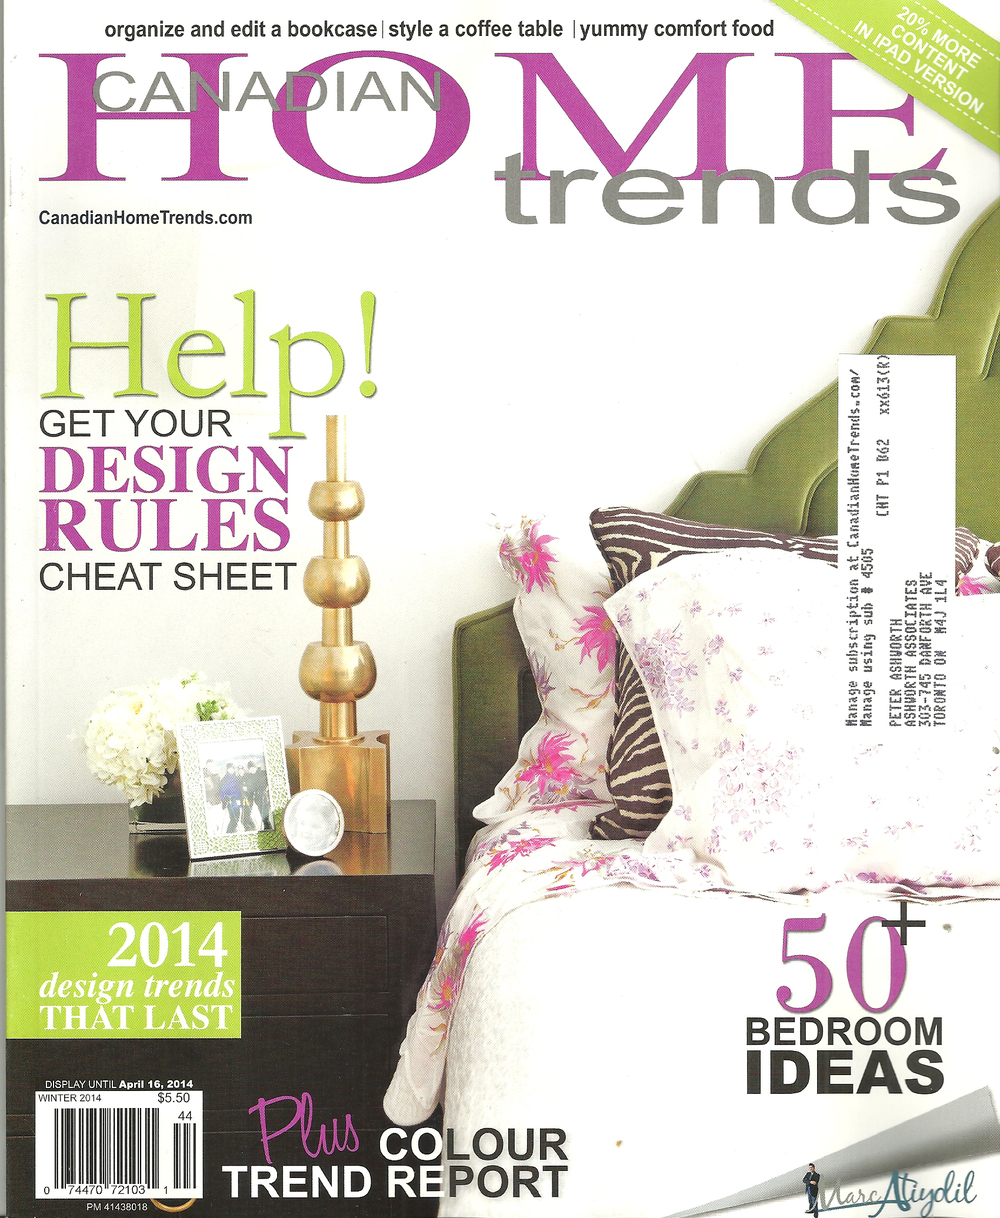 Canadian Home Trends Winter 2014 Cover.jpg